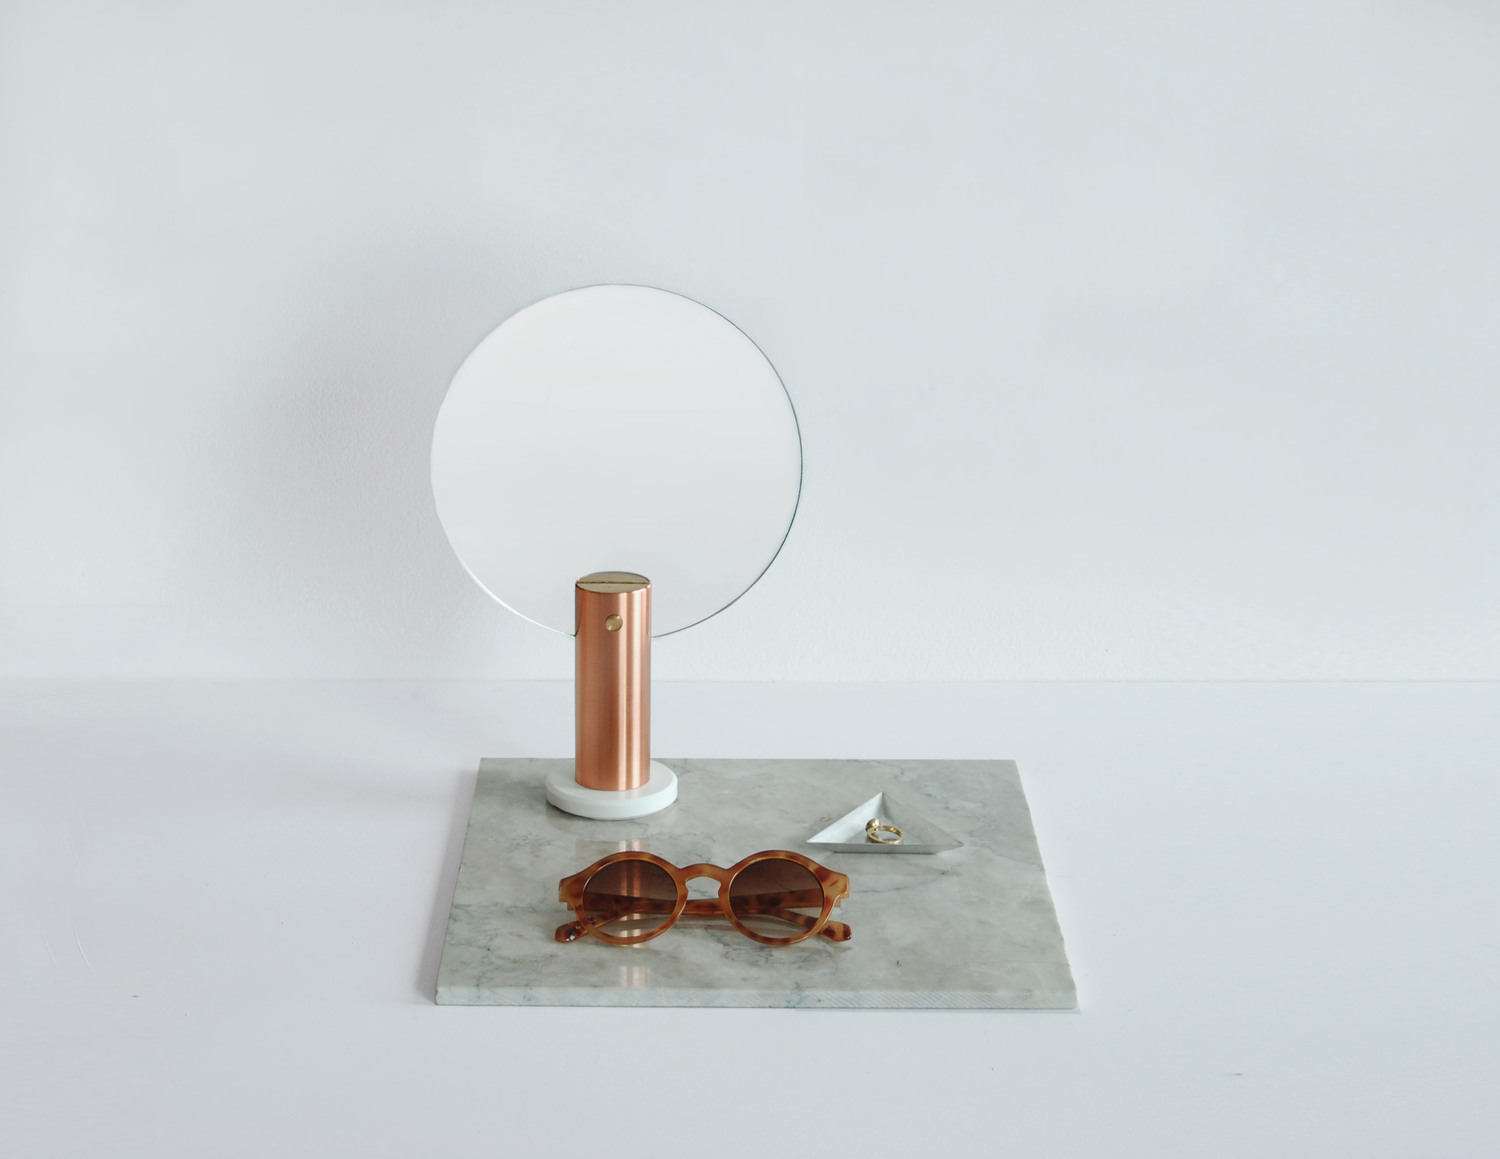 Maru hand mirror from Ladies & Gentlemen Studio